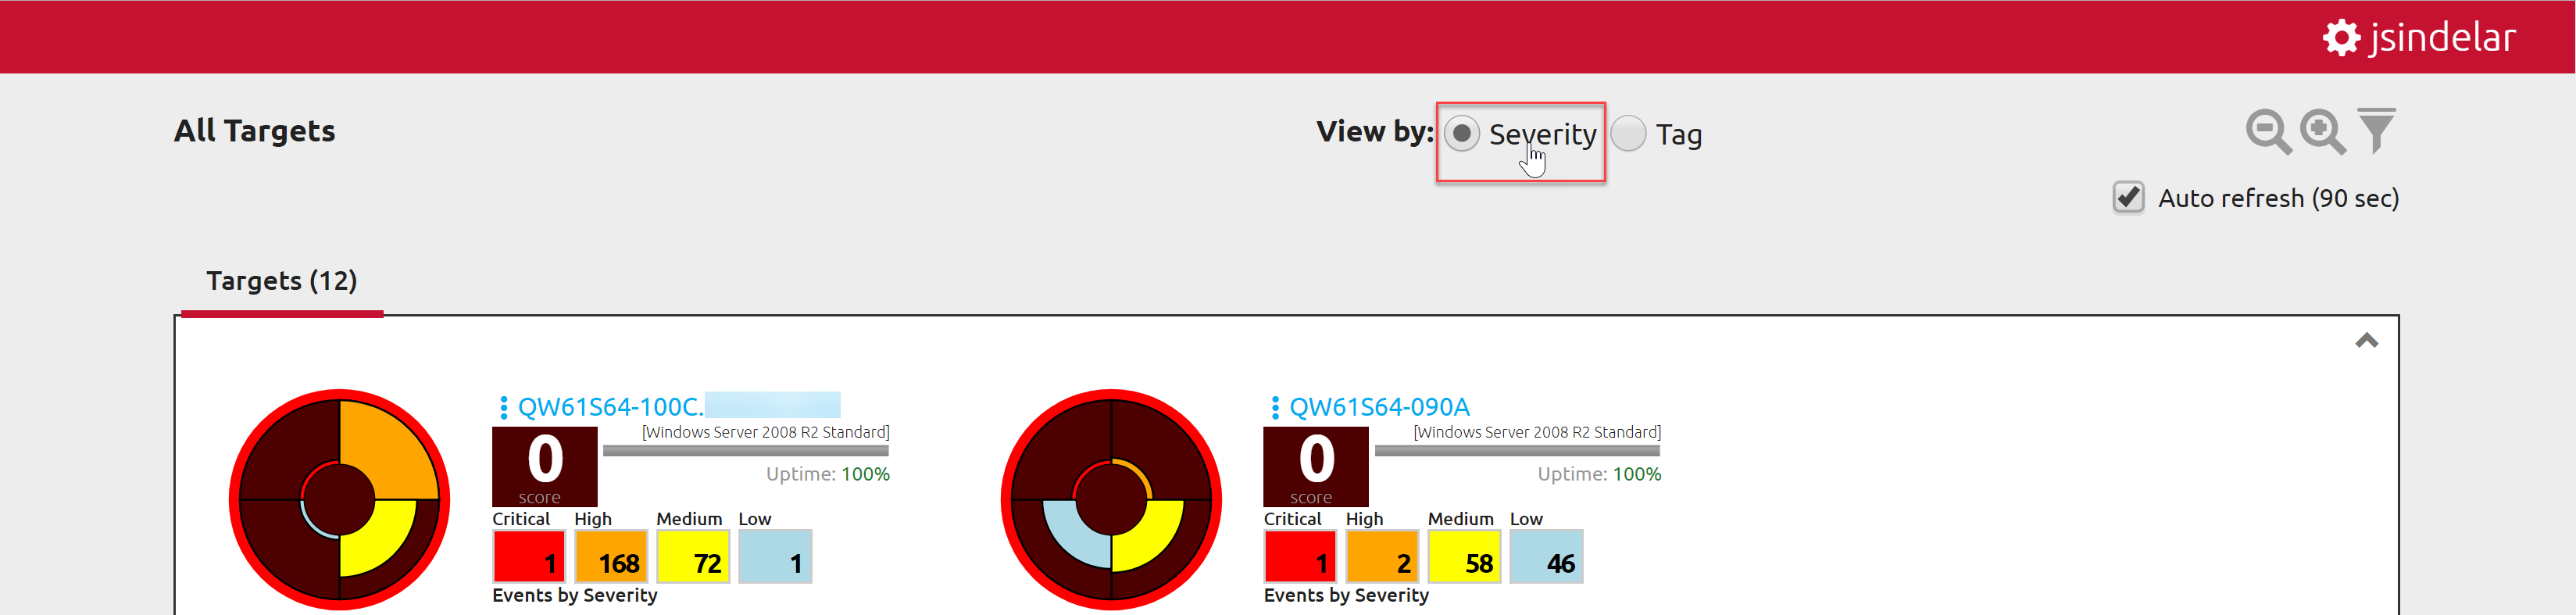 SentryOne Cloud All Targets View by Severity